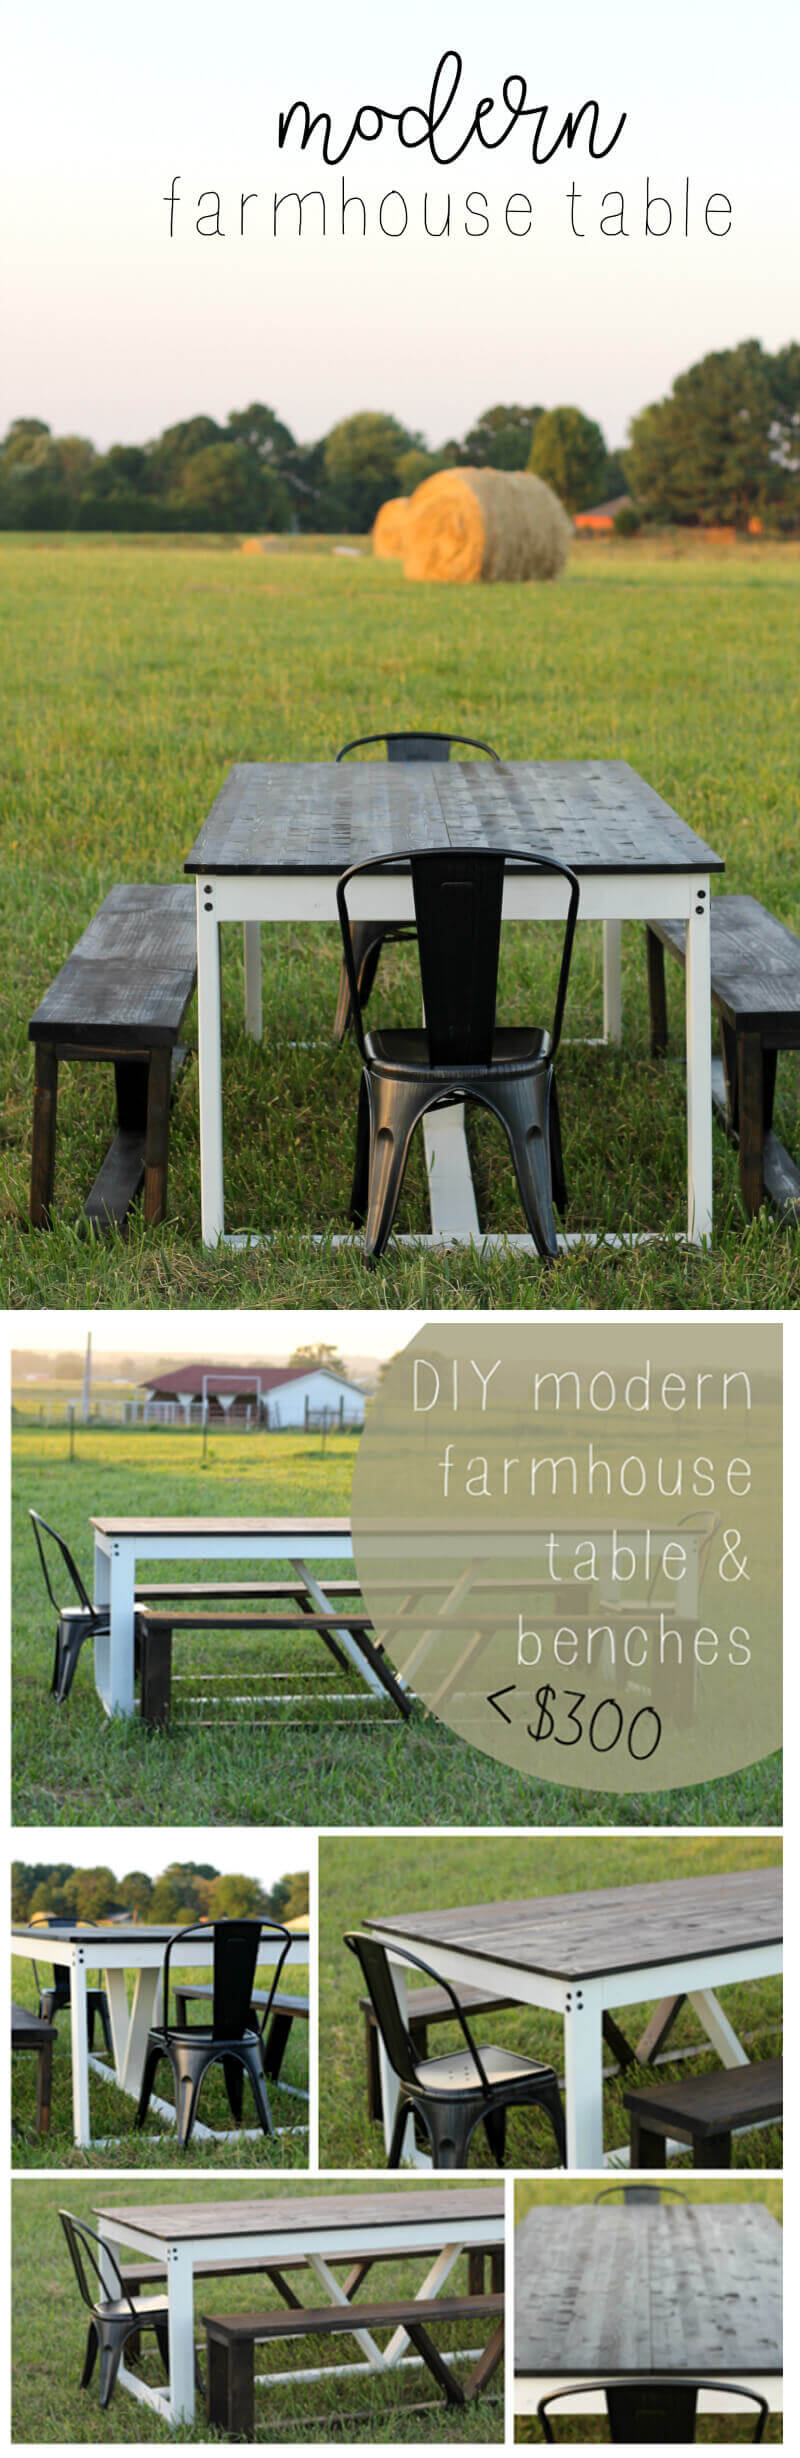 All the Farmhouse Trends in One Table